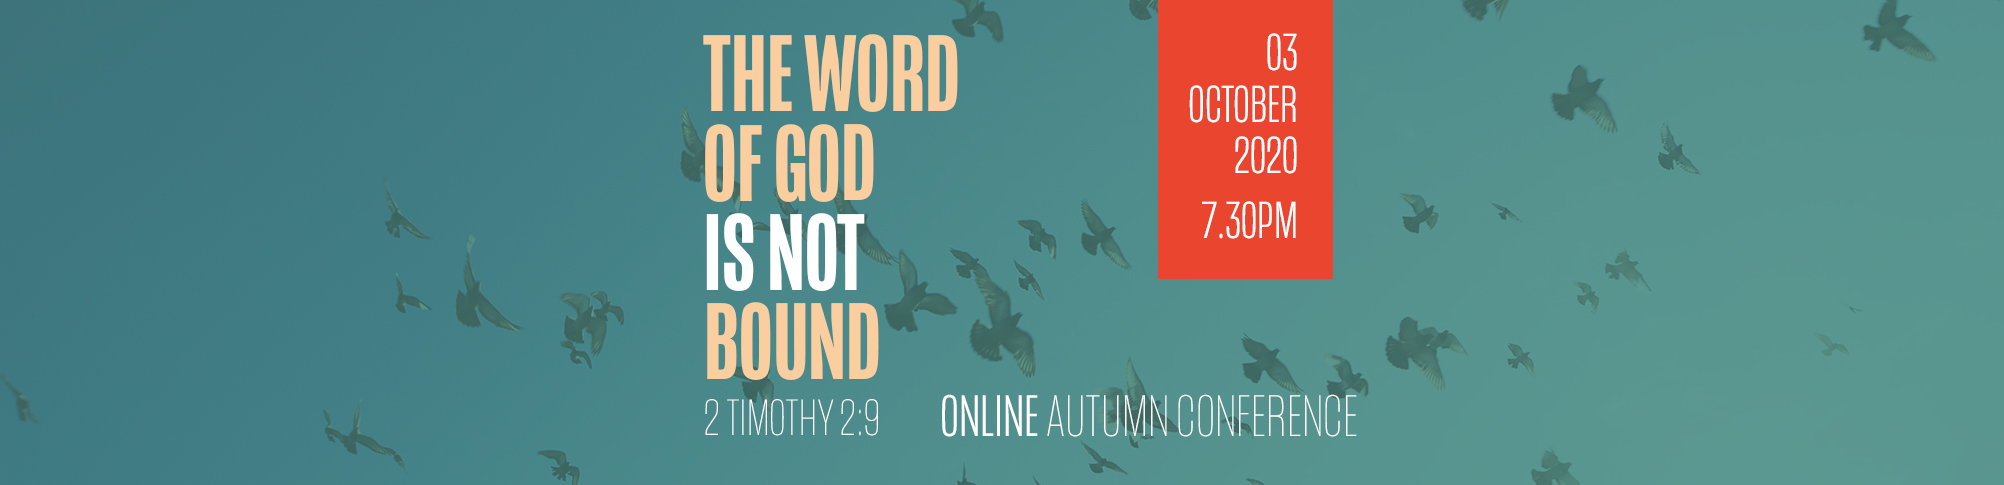 Autumn-Conference-2020-Banner-copy